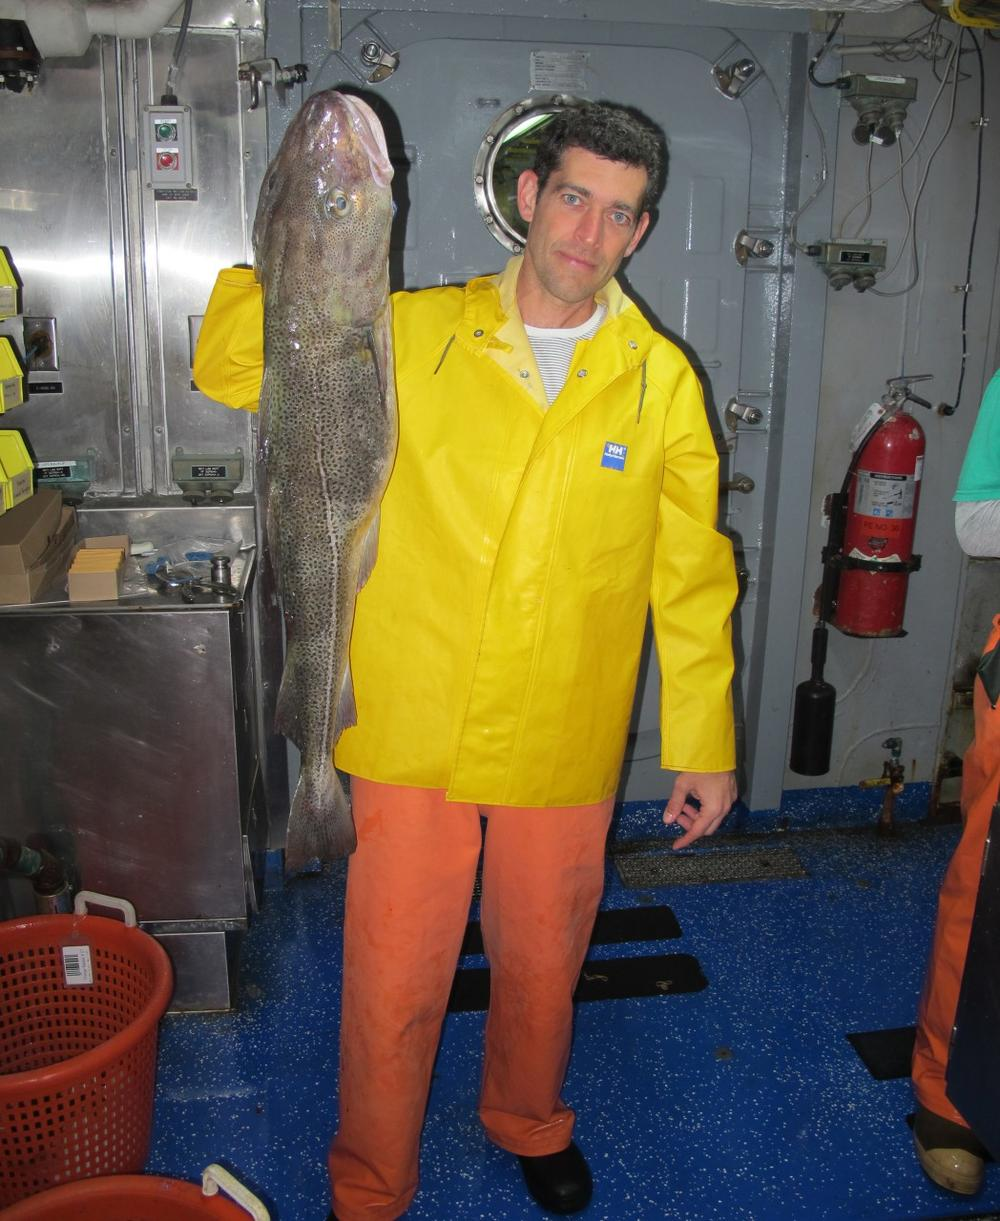 """Rowan Jacobsen holds up a cod fish. Pictured above is a monkfish, one of the """"trash fish"""" species that sustainable fisheries advocates say consumers should be eating more of now that cod is depleted. (Rowan Jacobsen)"""